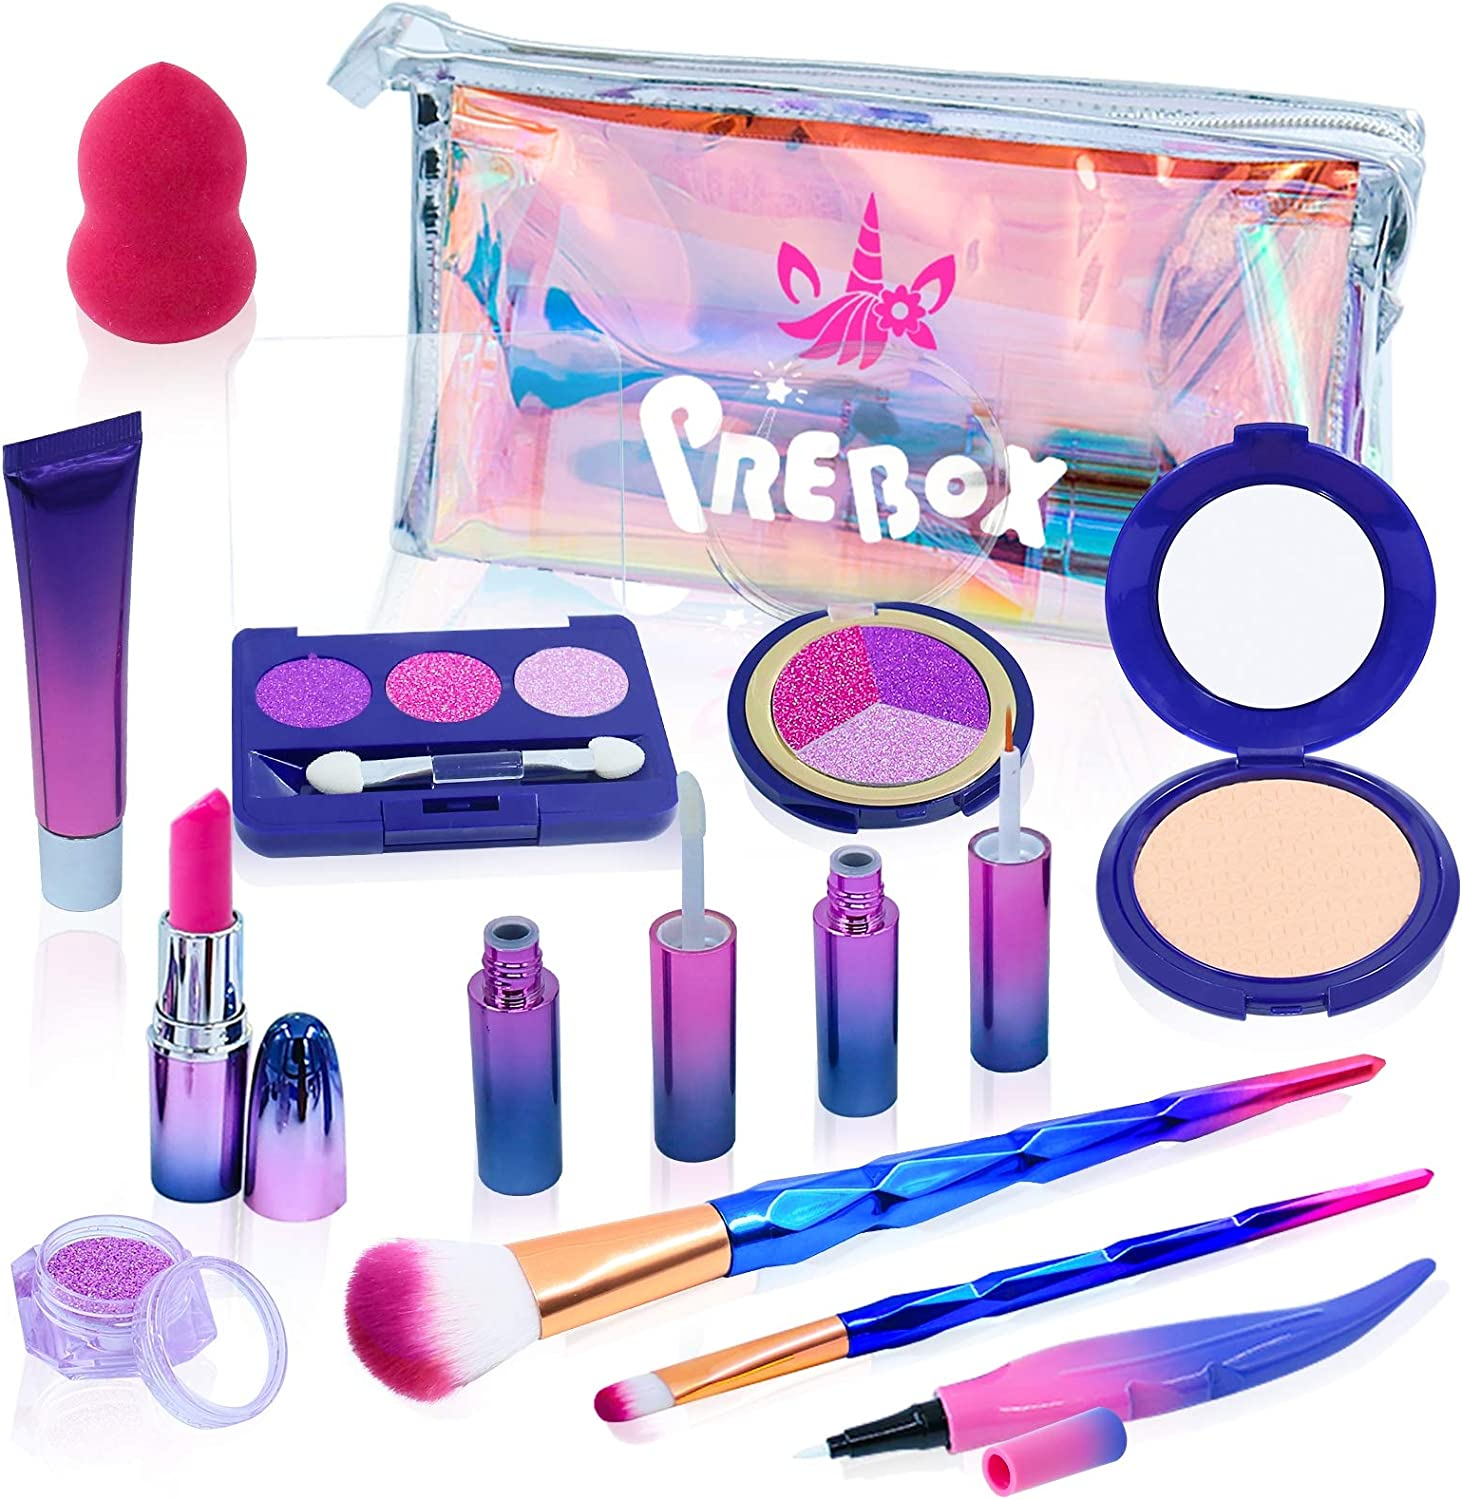 PREBOX Kids Pretend Play Makeup Set for Girls Toddlers Unicorn Collection Toy Make up Kit for Girls Age 2 3 4 5 6 Years Old (Fake but Realistic)